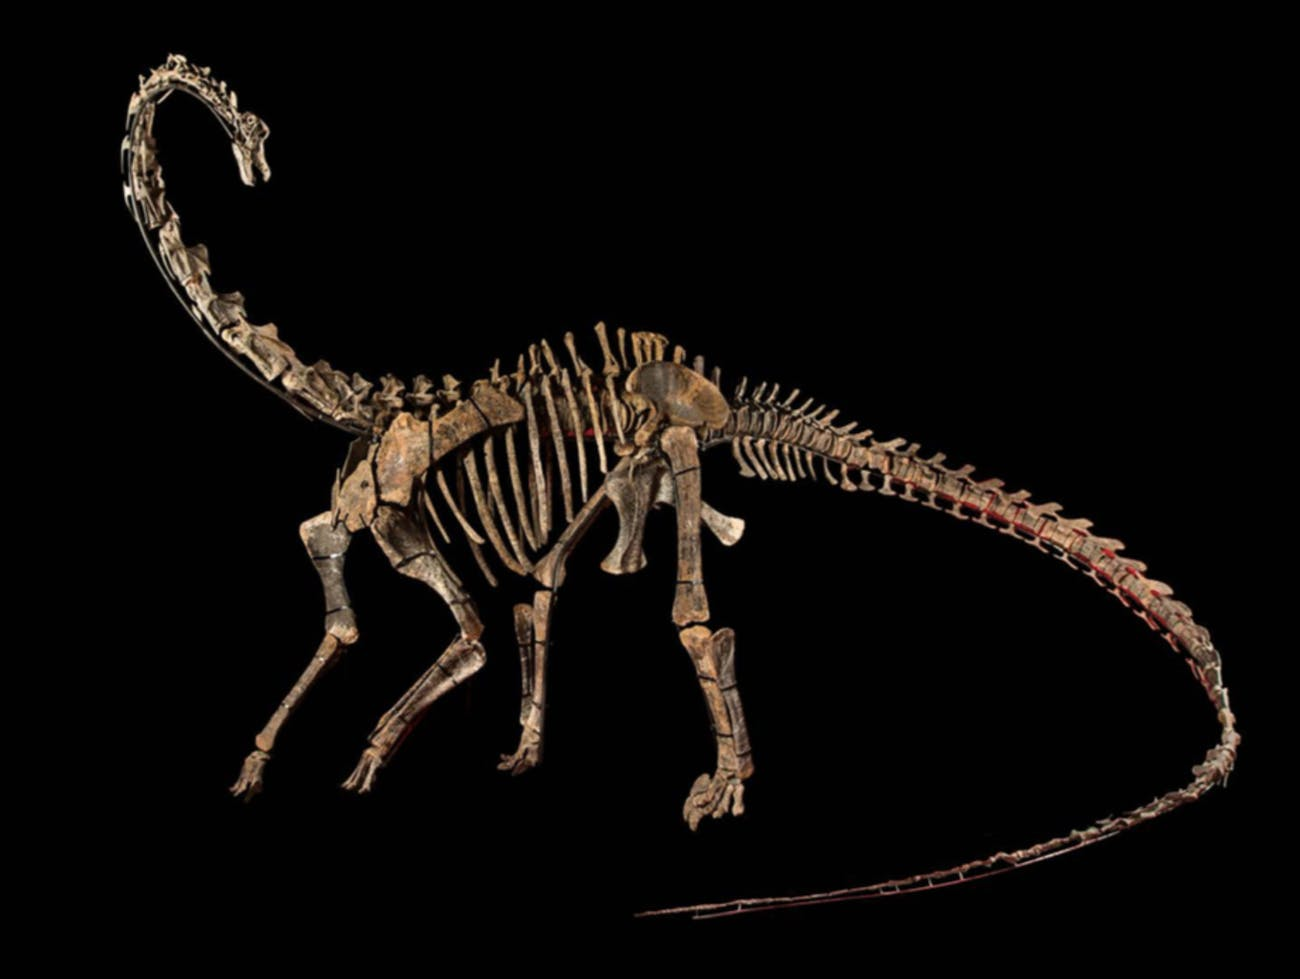 Two Dinosaur Skeletons Are on Sale in Paris For $1 4 Million